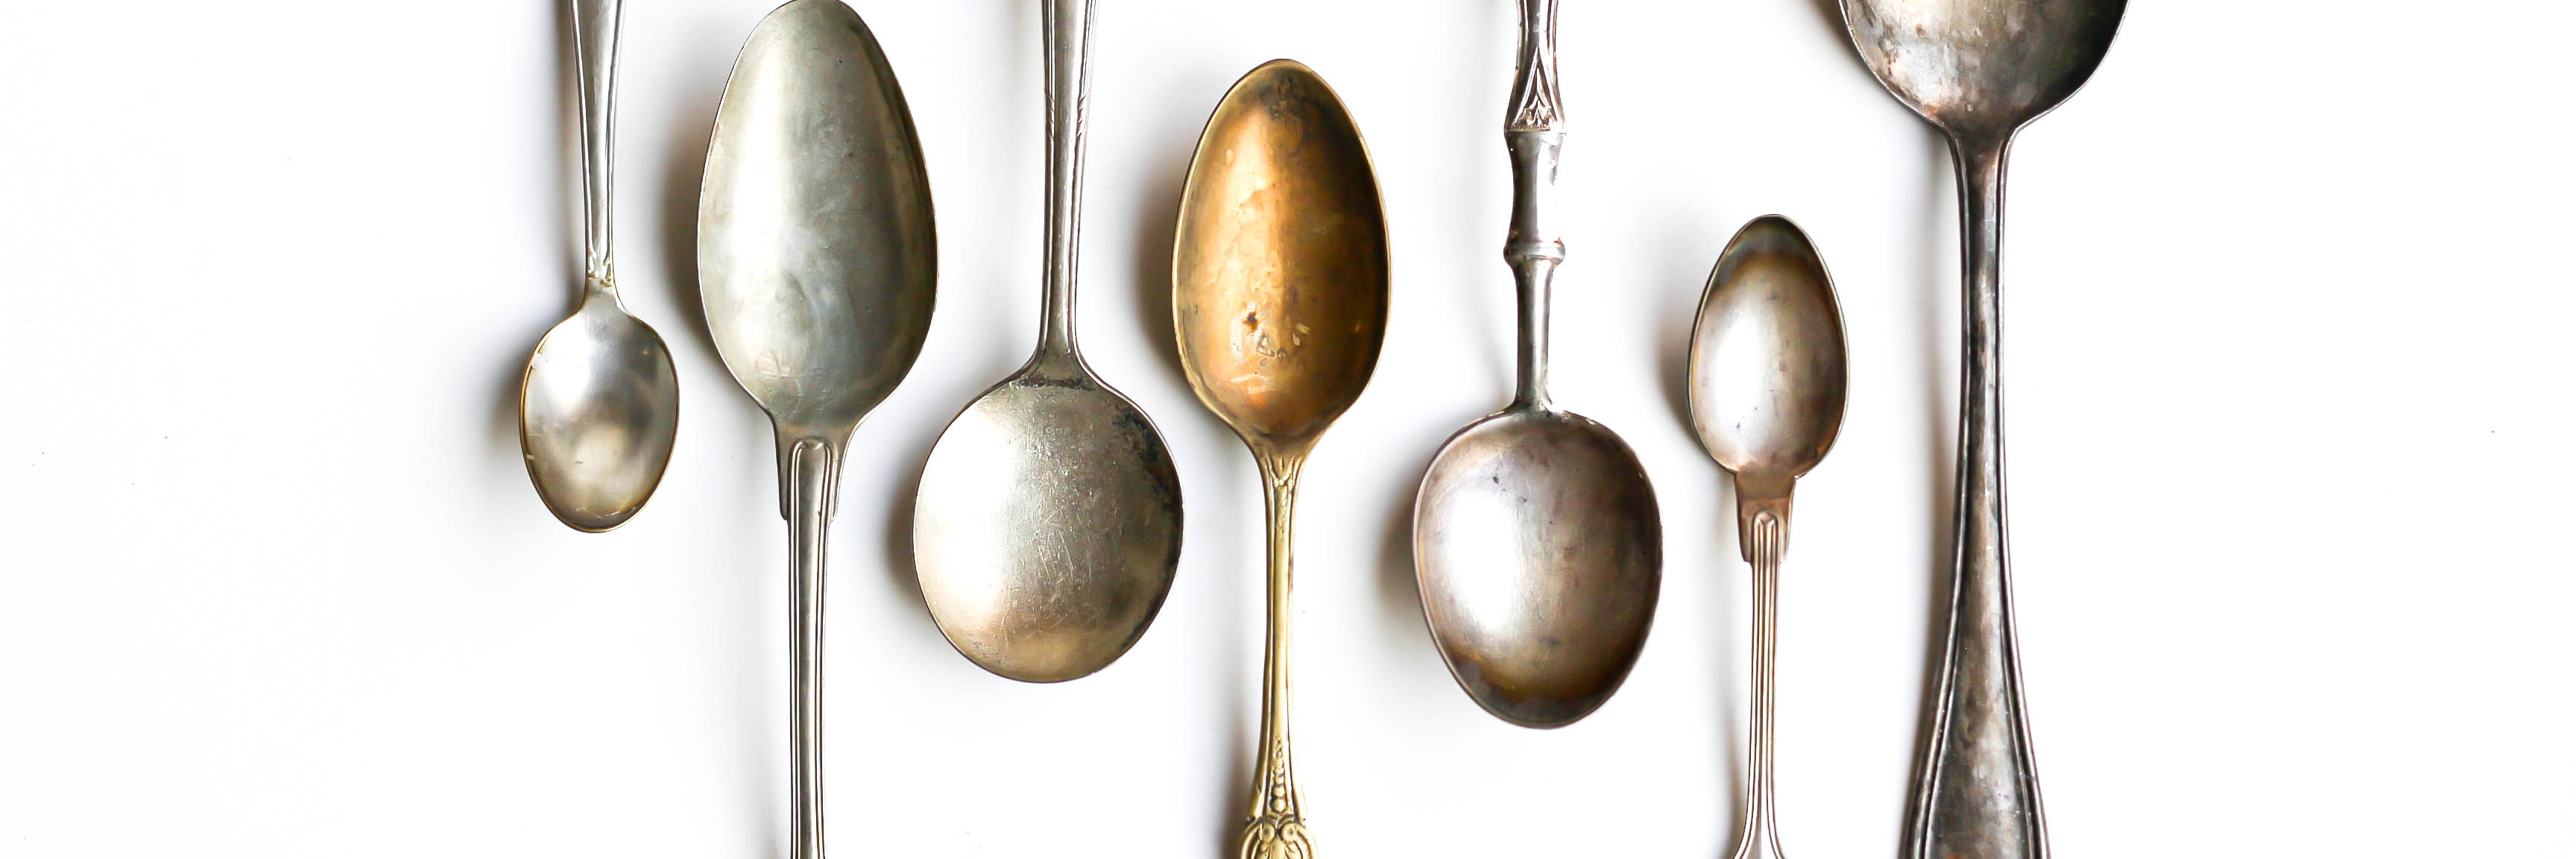 various antique silver spoons